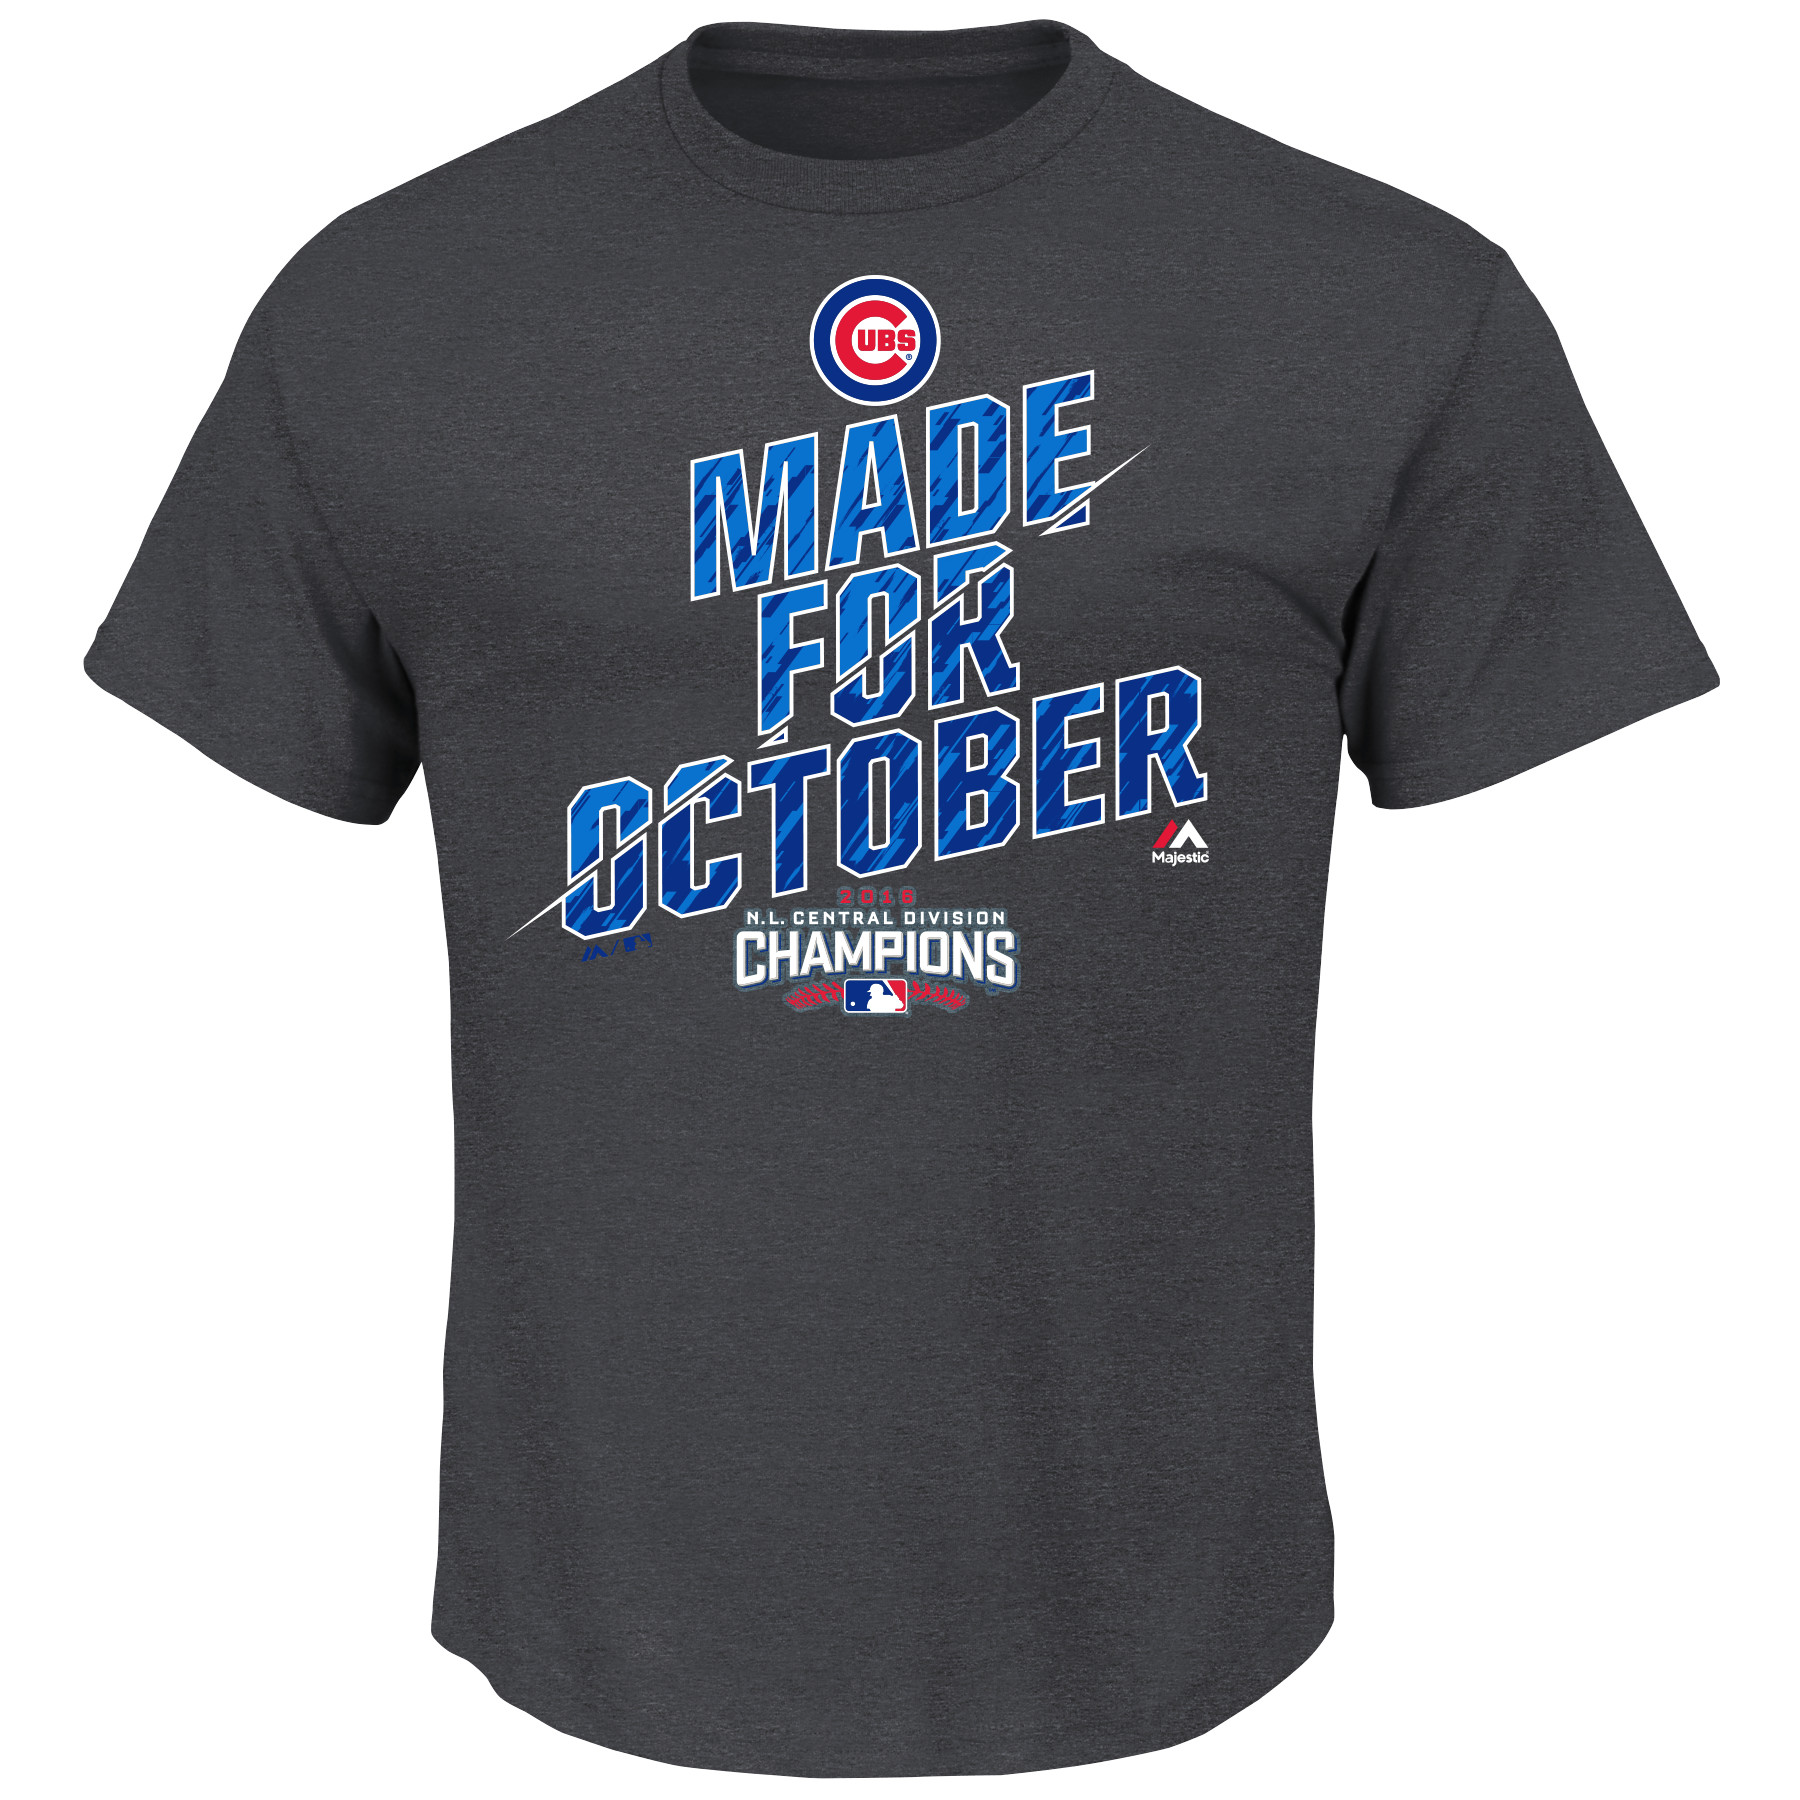 Chicago Cubs Majestic 2016 NL Central Division Champions Made for October Locker Room T-Shirt - Charcoal